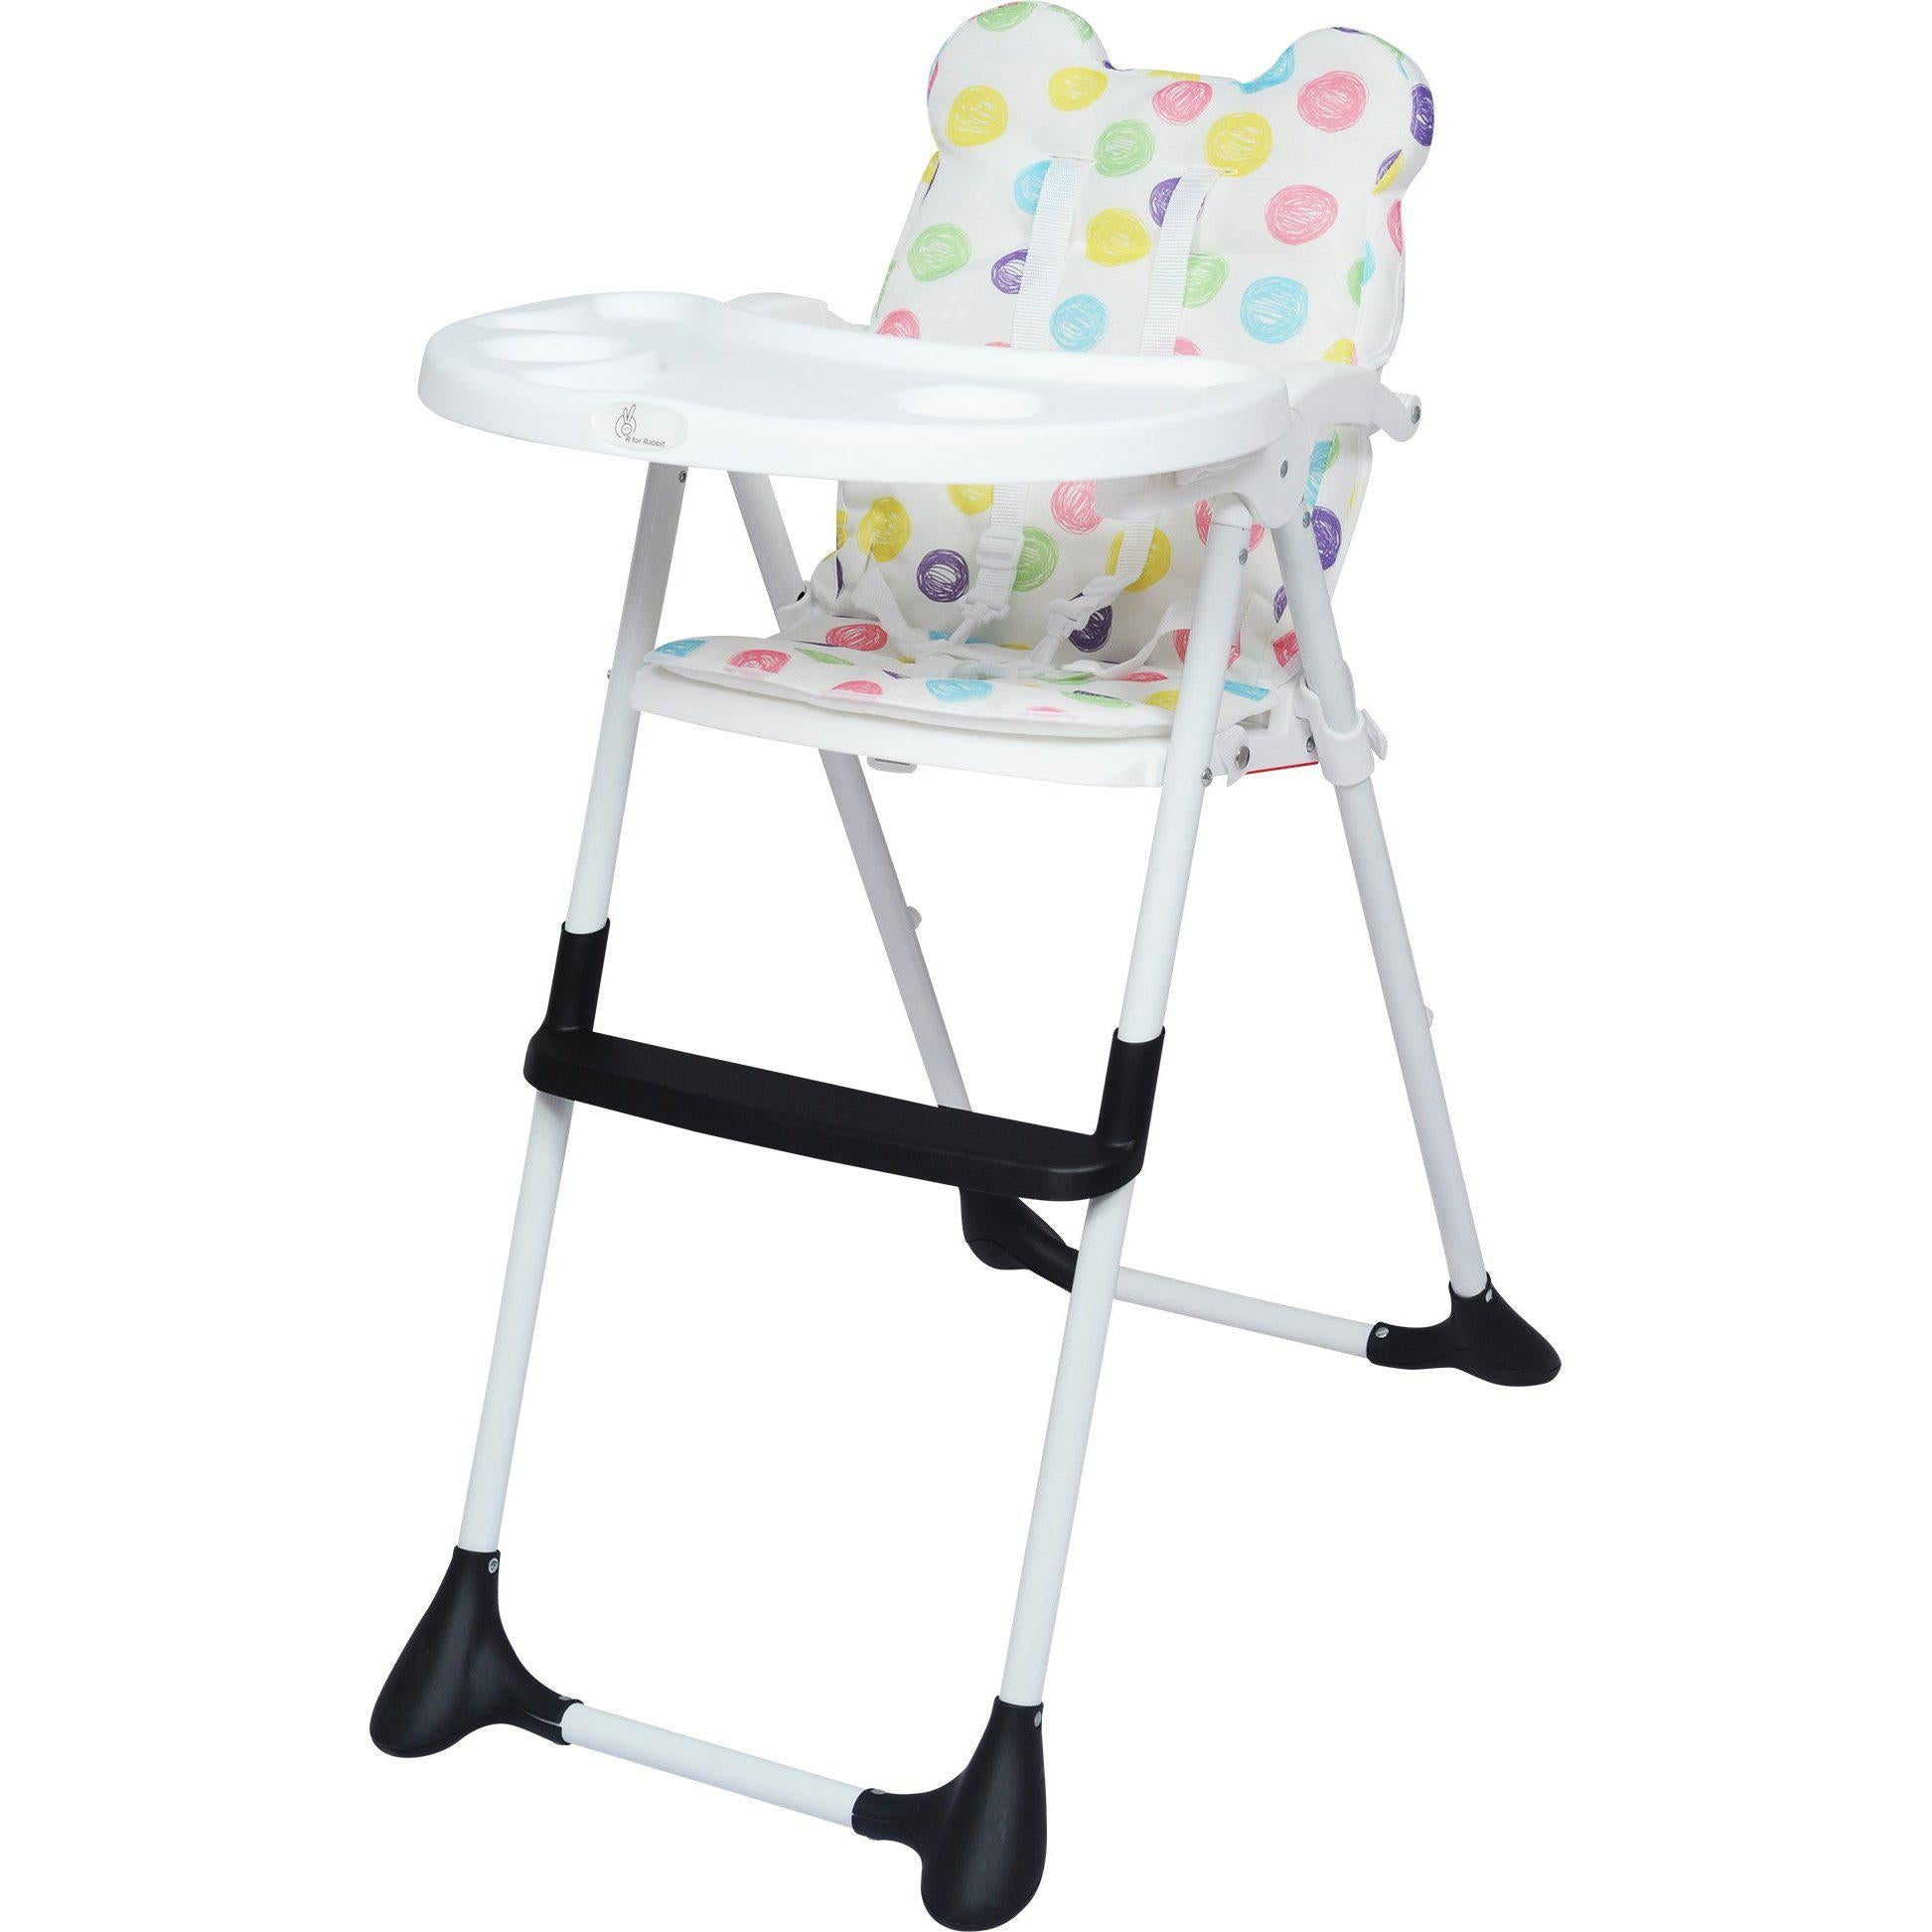 R For Rabbit Little Muffin Grand The Portable High Chair